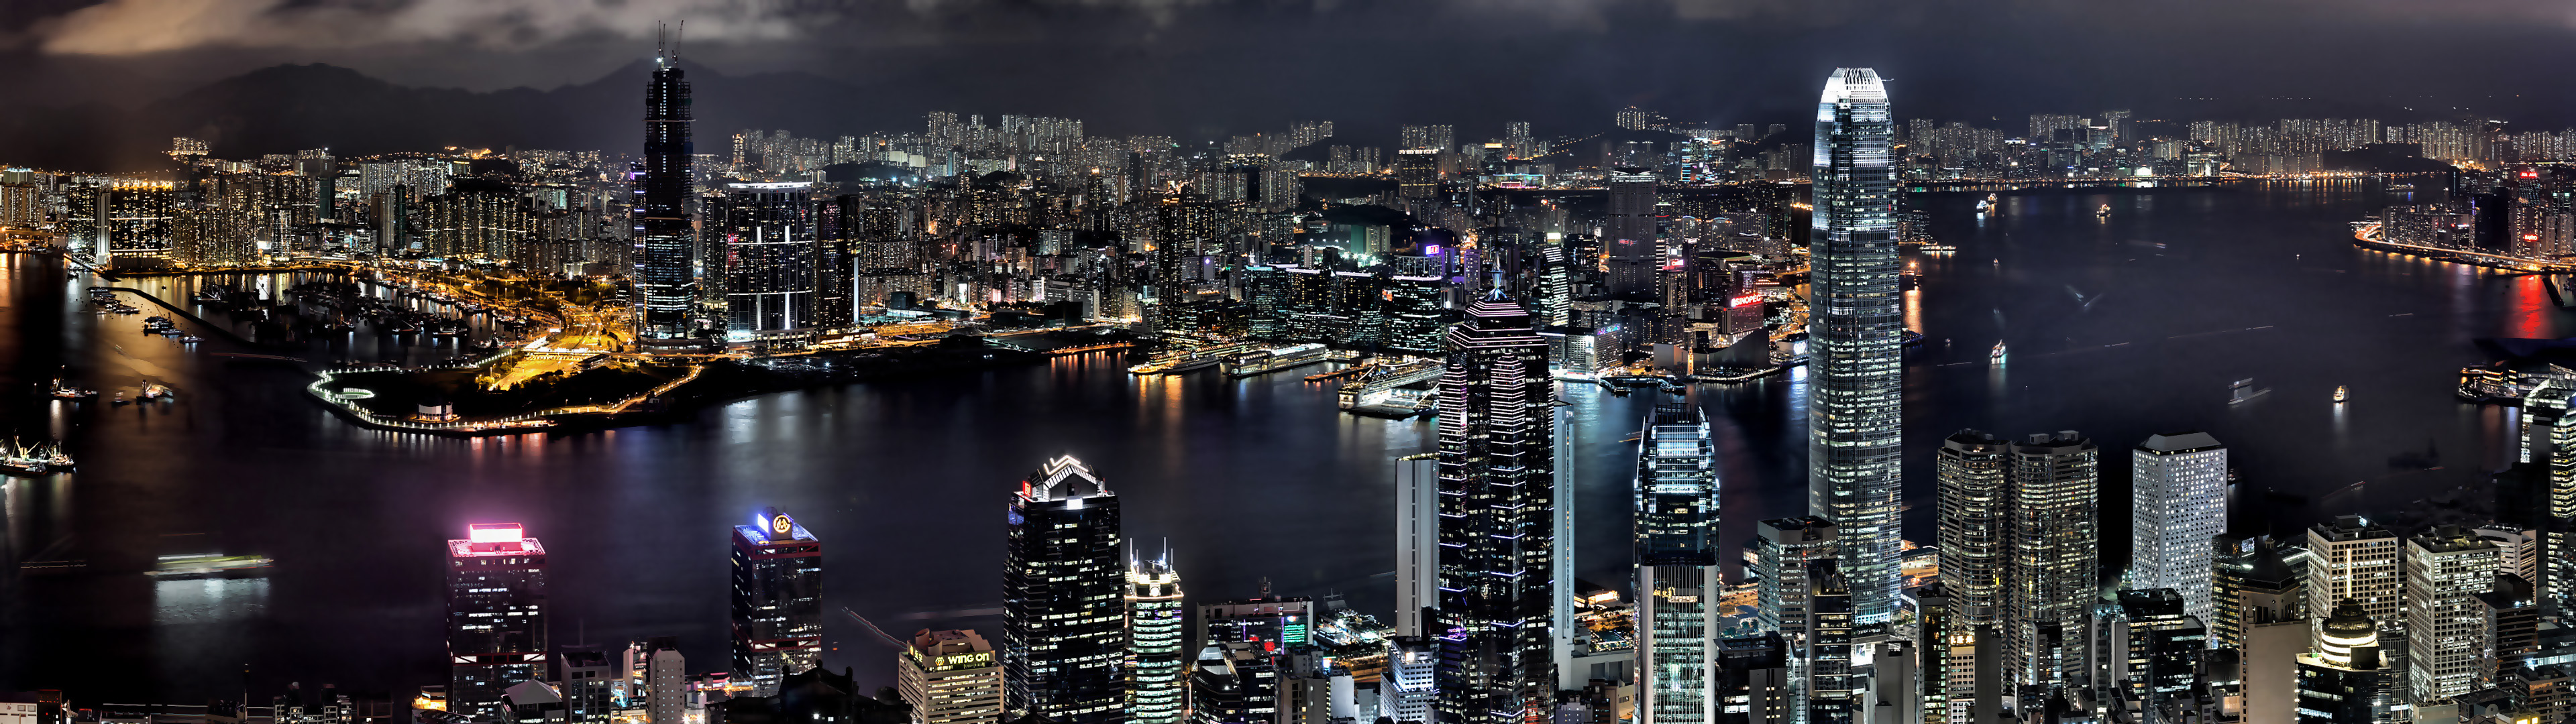 Cityscapes-night-buildings-Hong-Kong-x1080-UP-wallpaper-wpc5803511